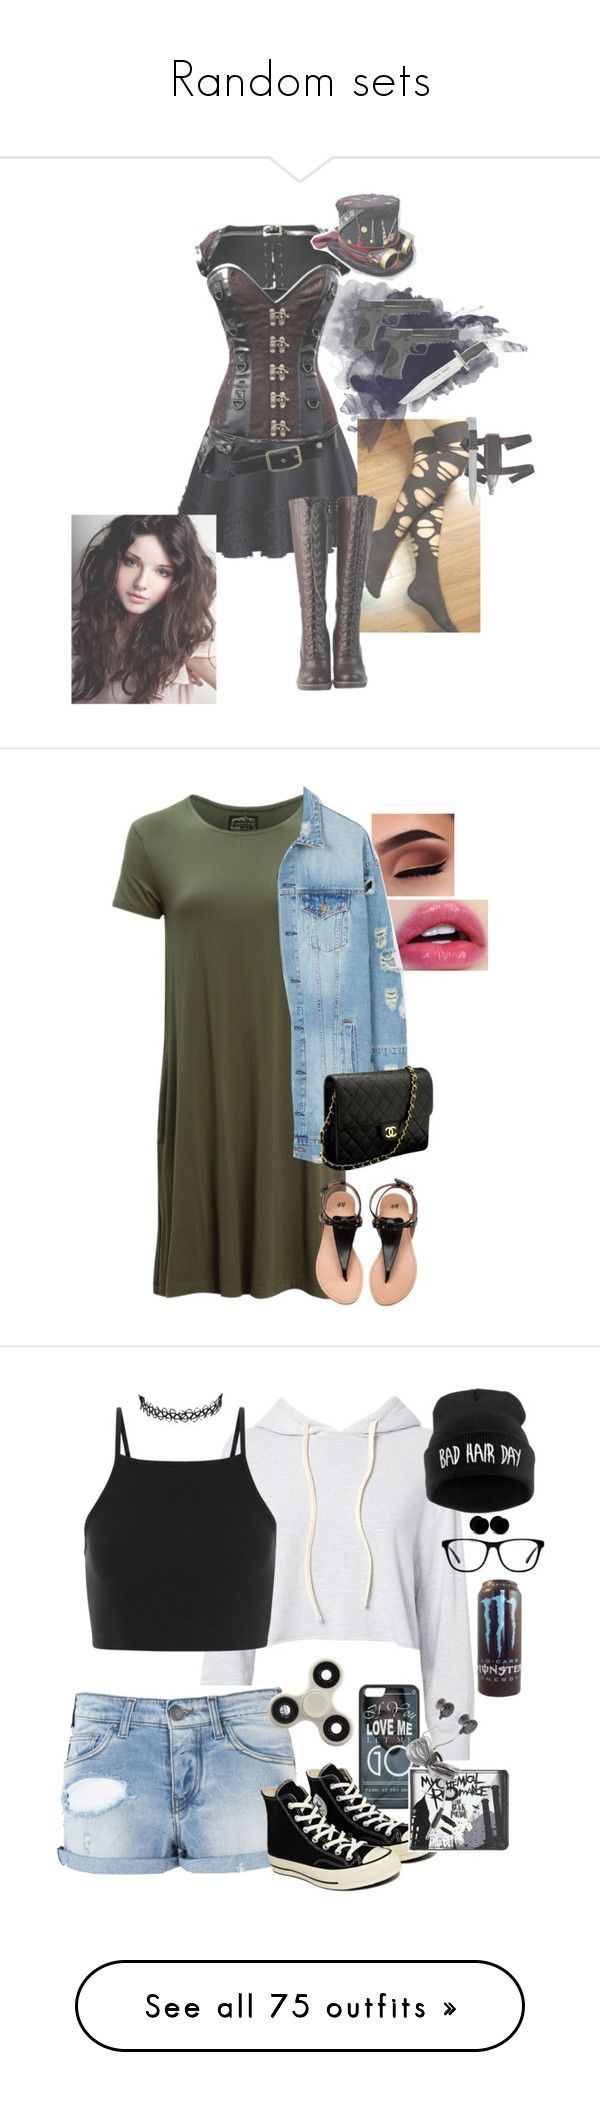 """""""Random sets"""" by g-0-n-e-r ❤ liked on Polyvore featuring Chicwish, DimeCity, Smith & Wesson, United by Blue, LE3NO, Chanel, Monrow, Armani Jeans, Converse and Hot Topic"""